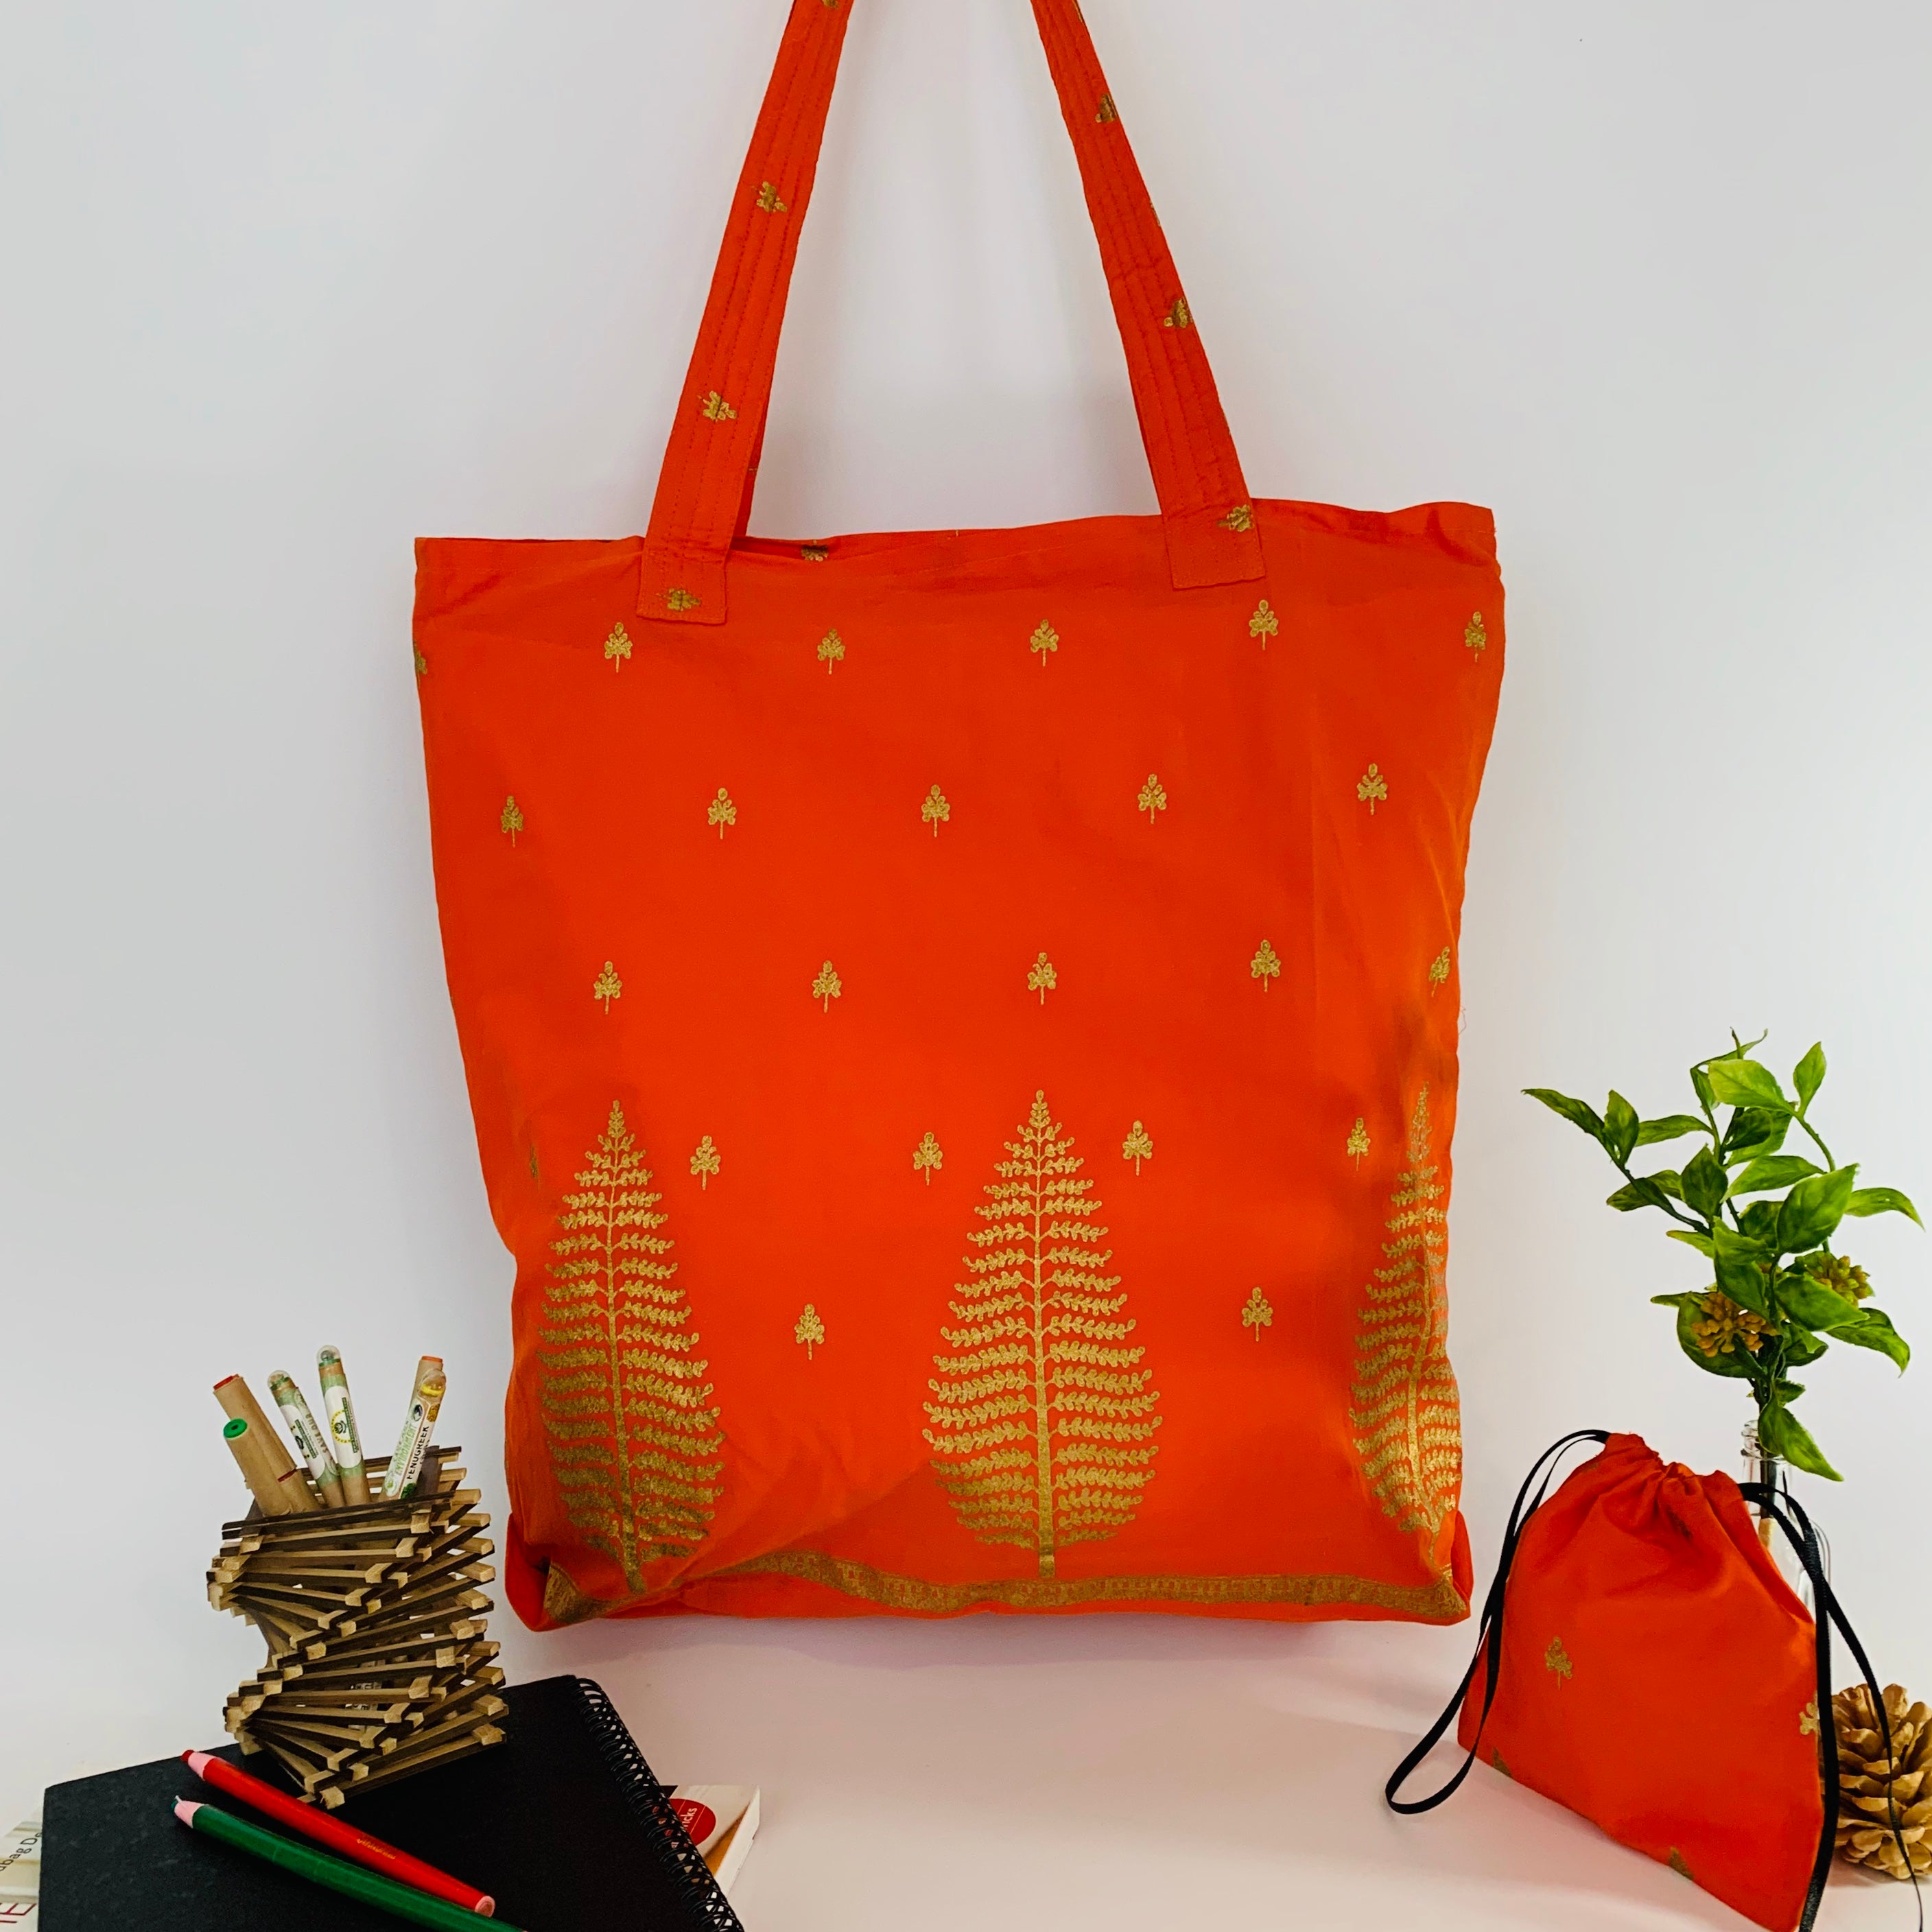 Large Tote Bag with Drawstring Multipurpose Pouch; Eco friendly